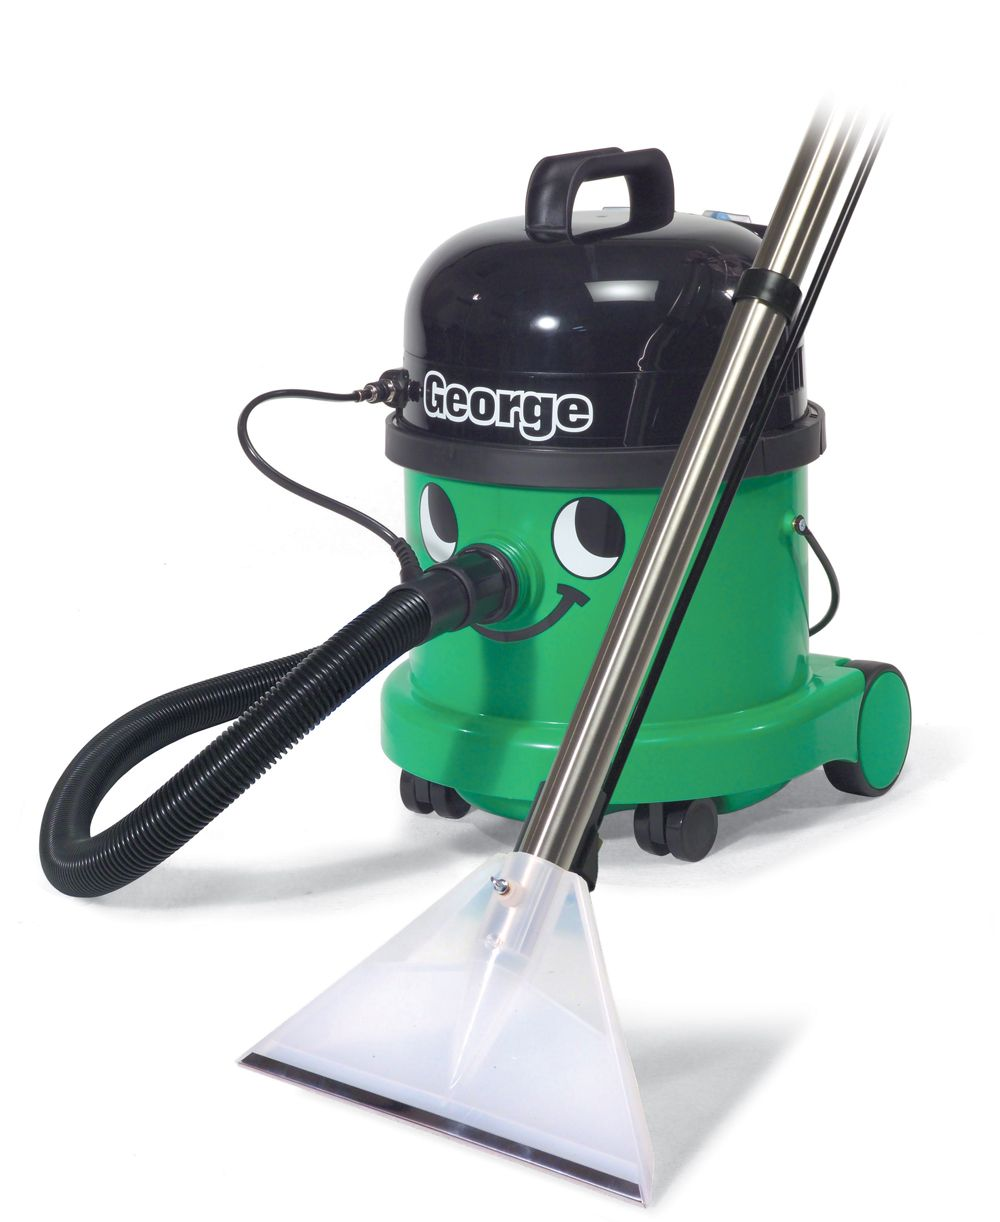 NUMATIC GEORGE 3n1 EXT/WET/DRY VACUUM